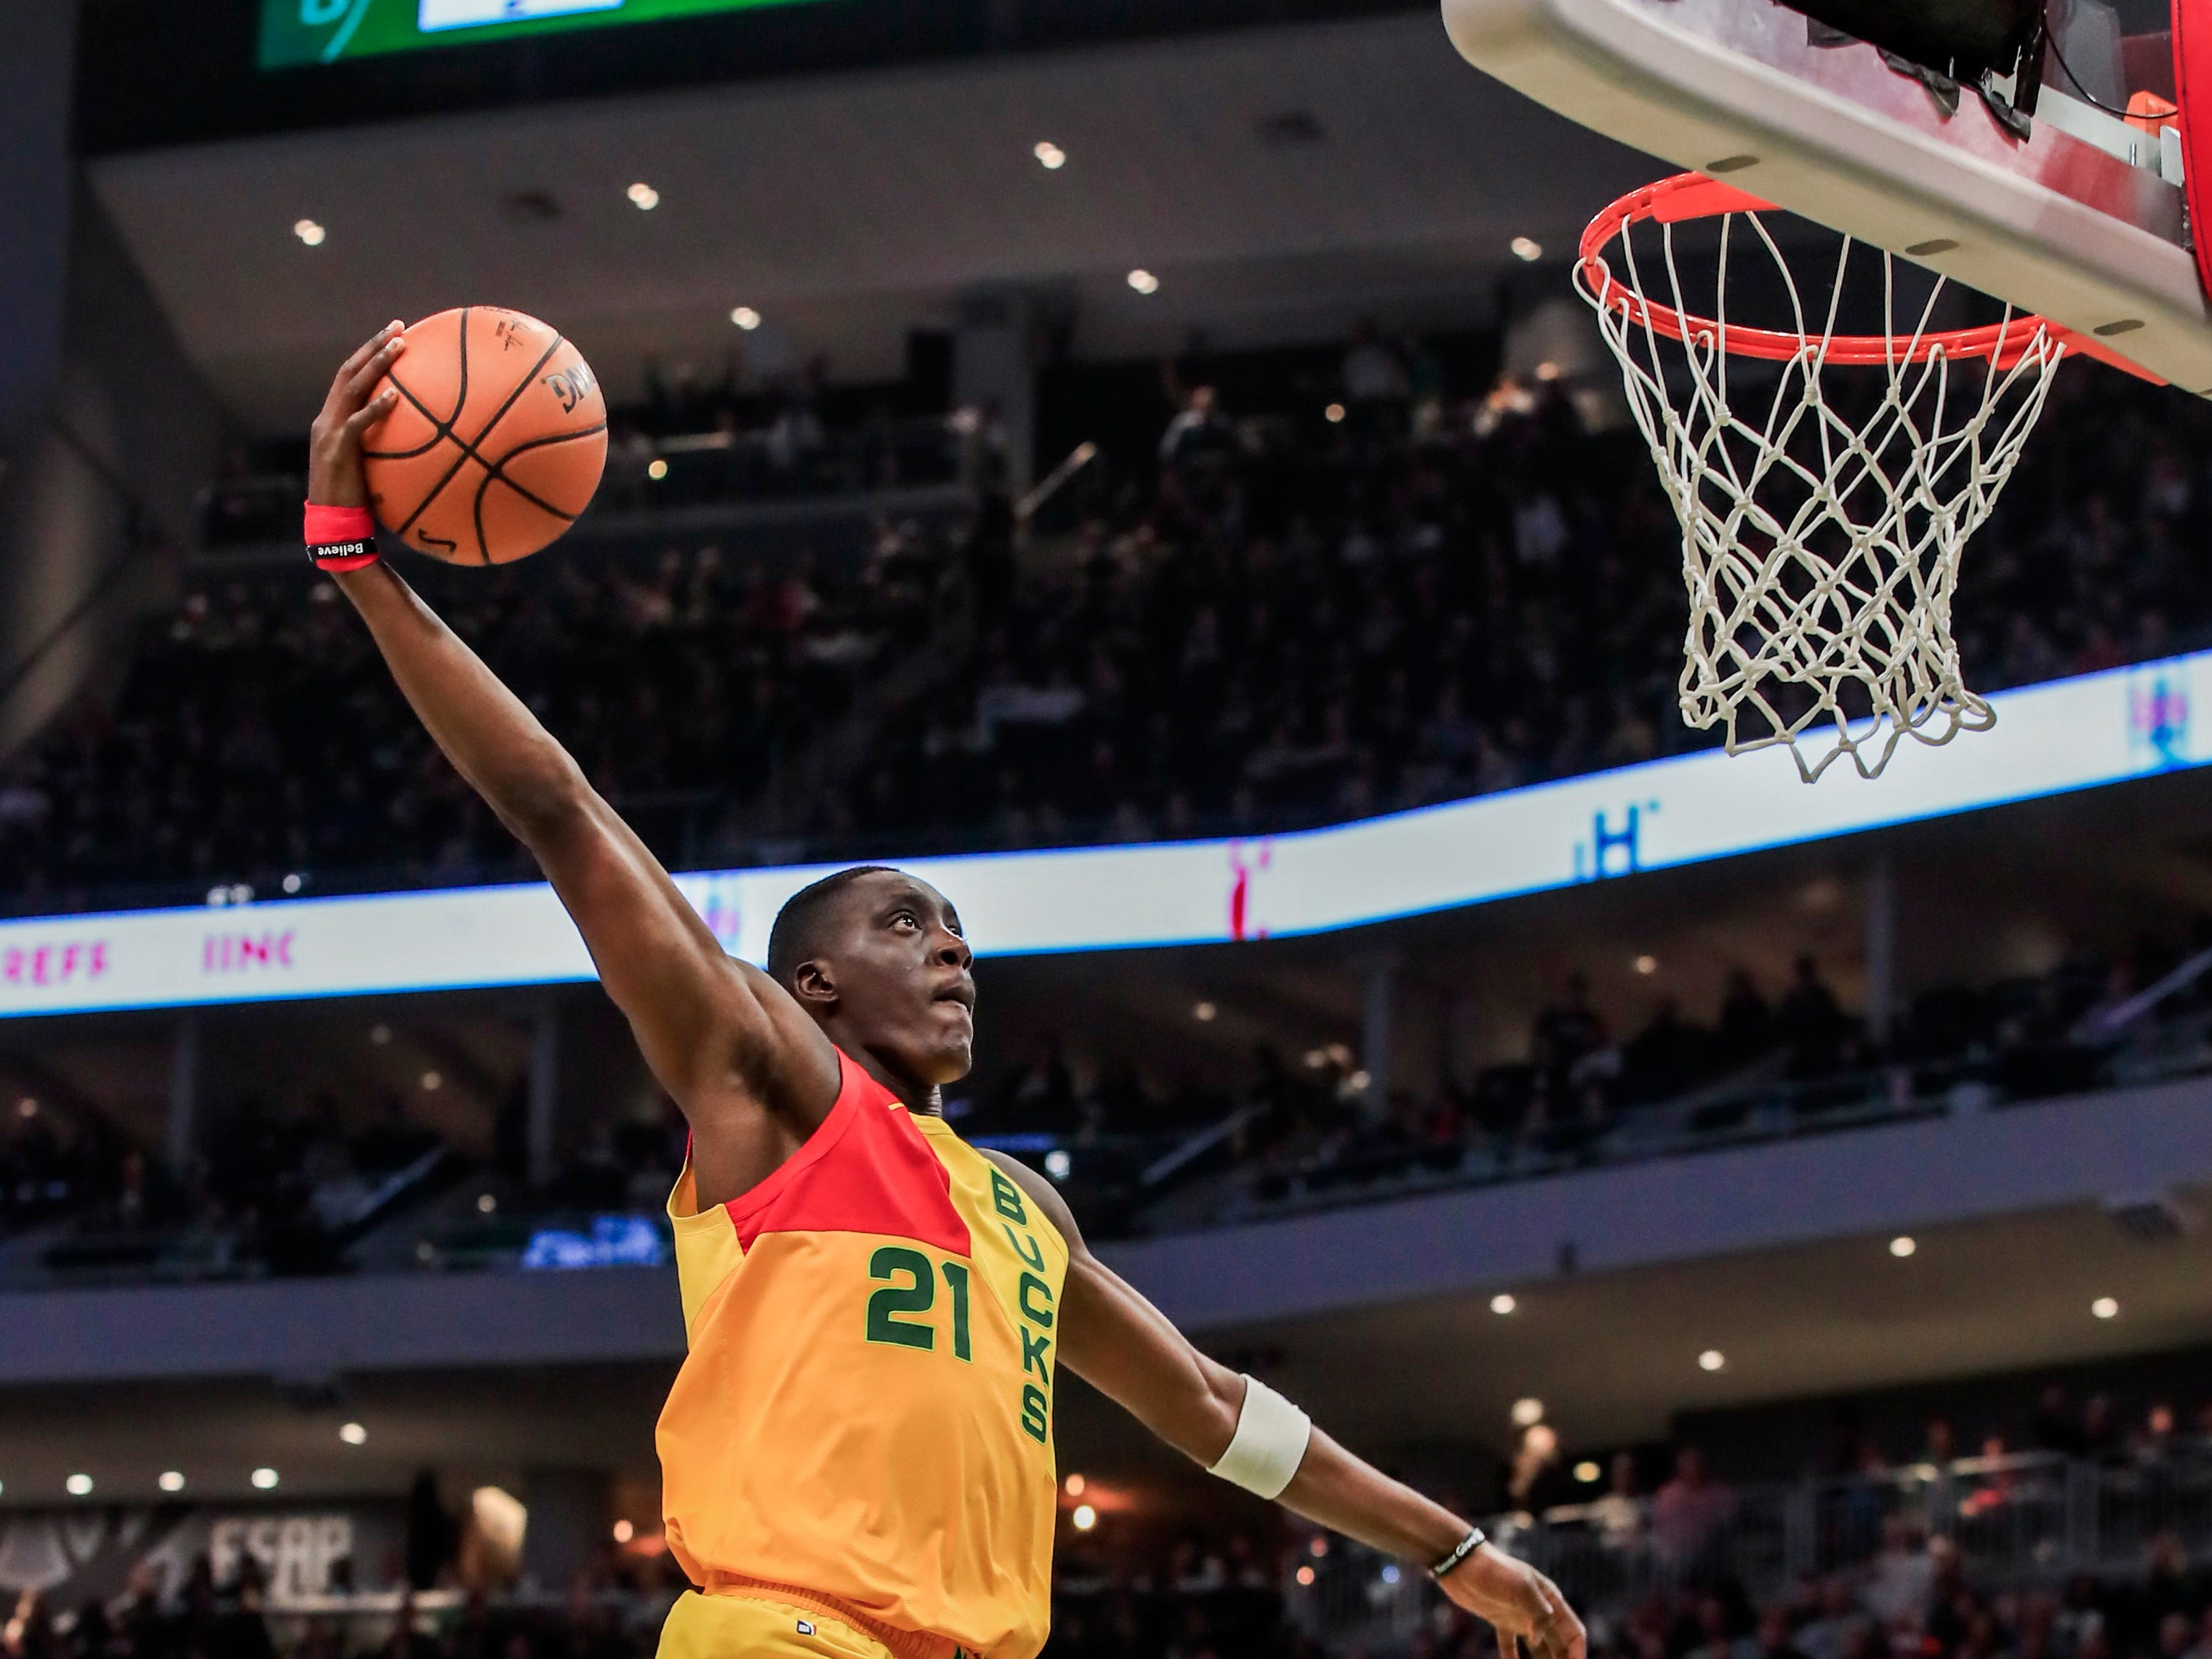 Tony Snell of the Bucks comes soaring in for an uncontested dunk against Cleveland on Sunday.